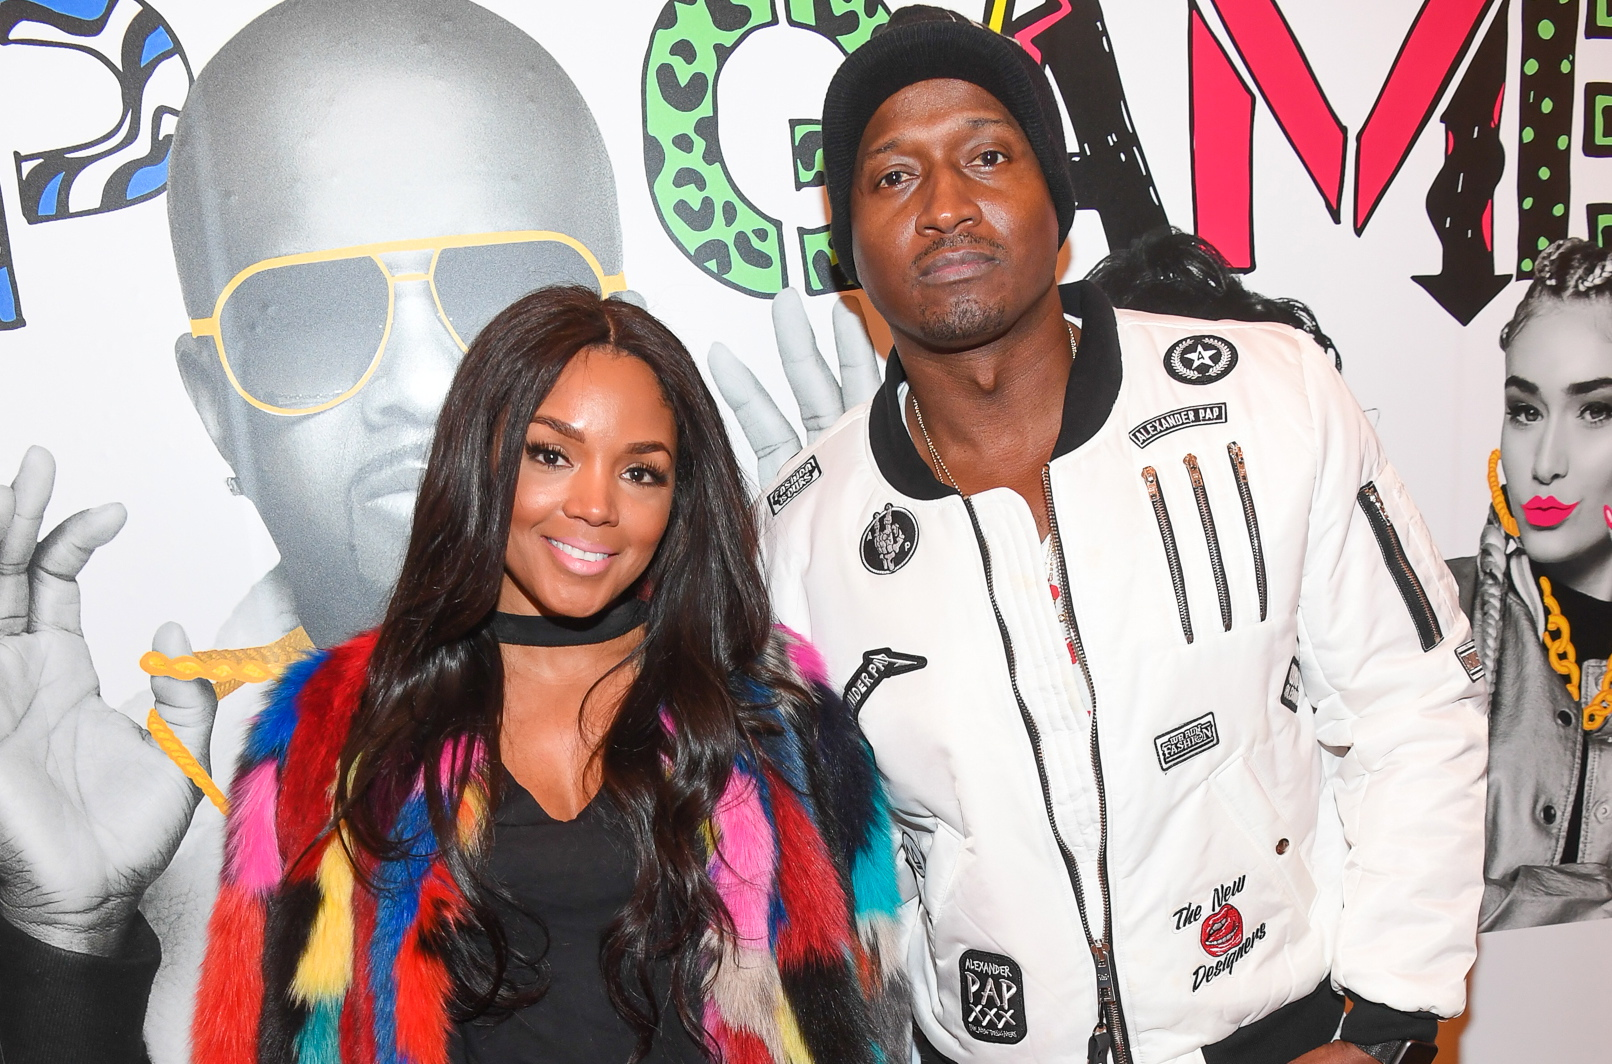 rasheeda-and-kirk-frost-are-compared-to-beyonce-and-jay-z-by-fans-who-call-them-soulmates